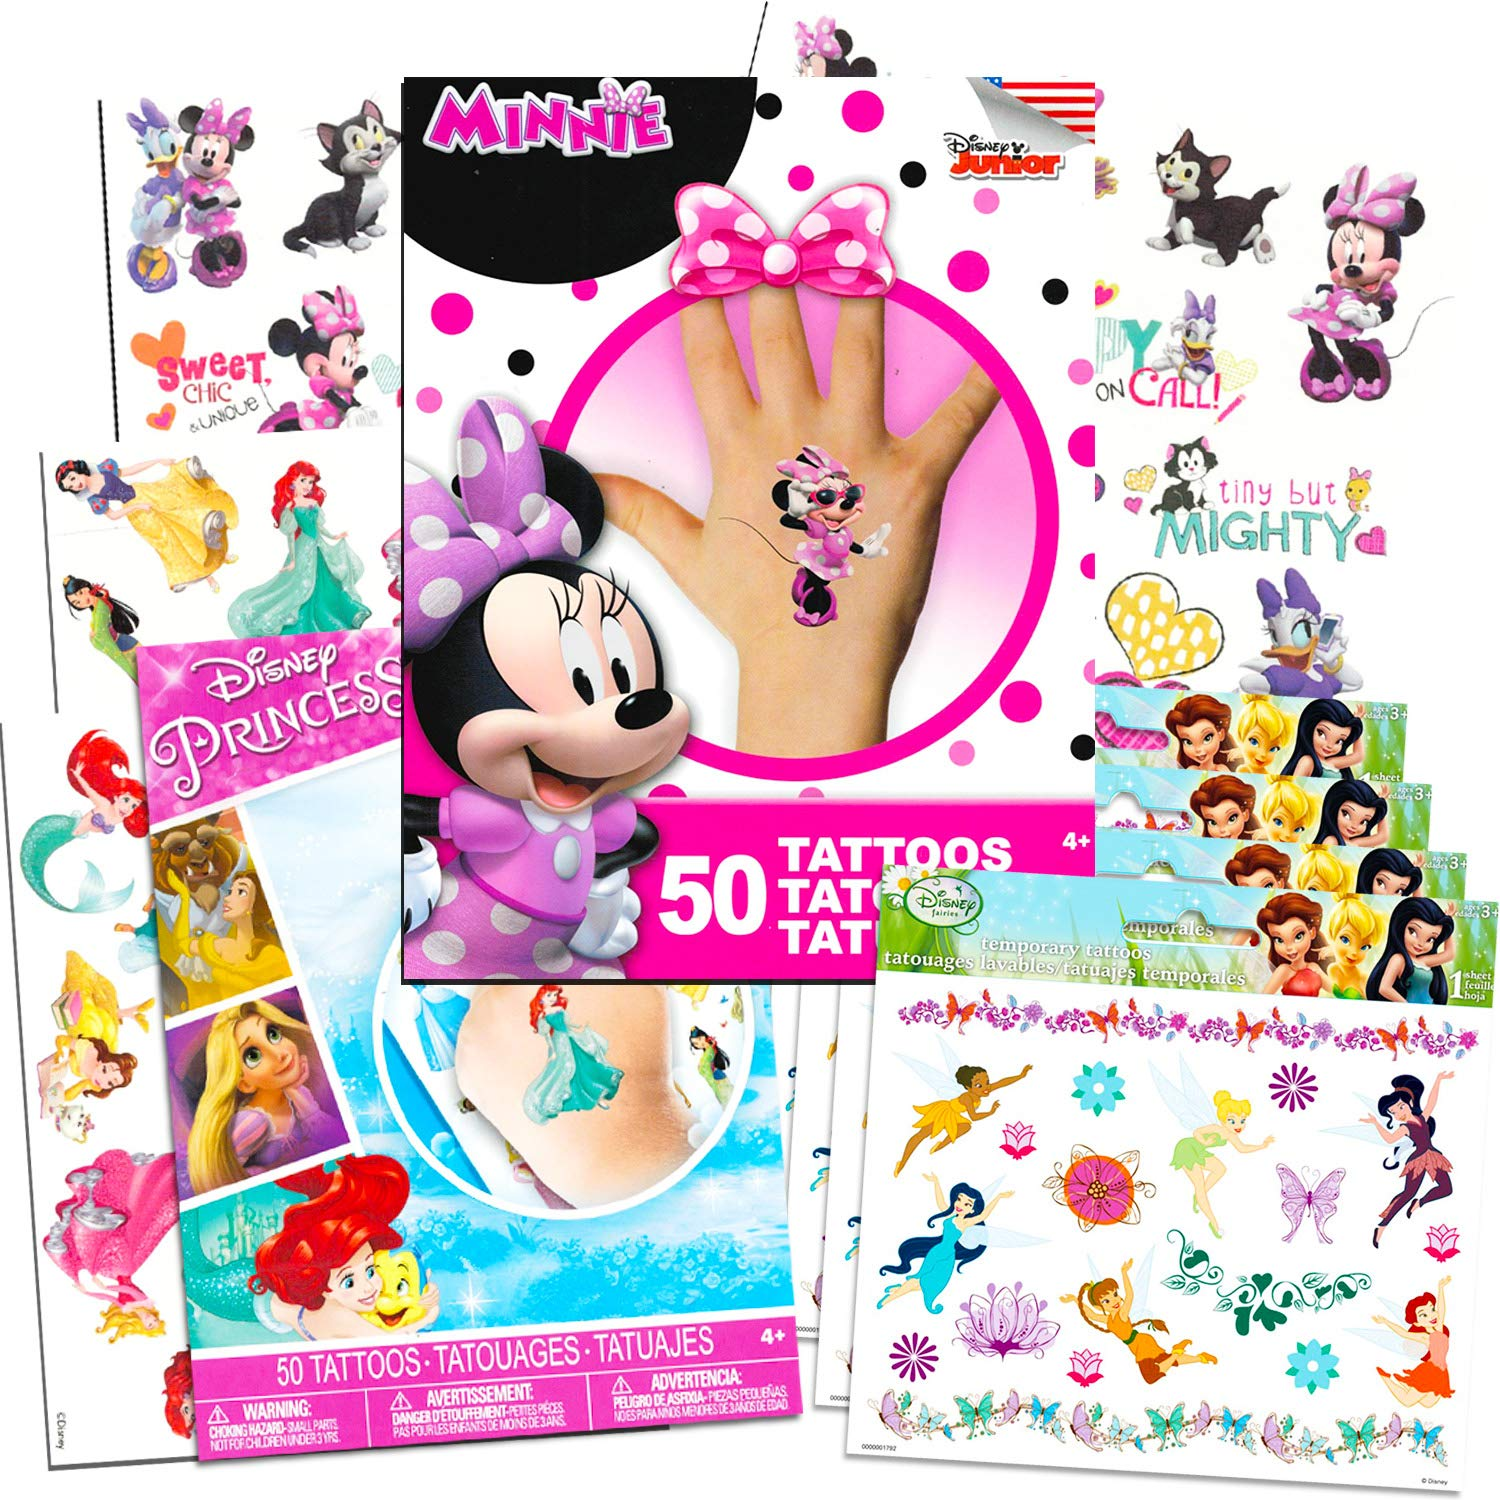 Disney Tattoos Party Favor Set For Girls Over 175 Temporary Tattoos Featuring Minnie Mouse Disney Princess and Disney Fairies 12 Temporary Tattoo Sheets